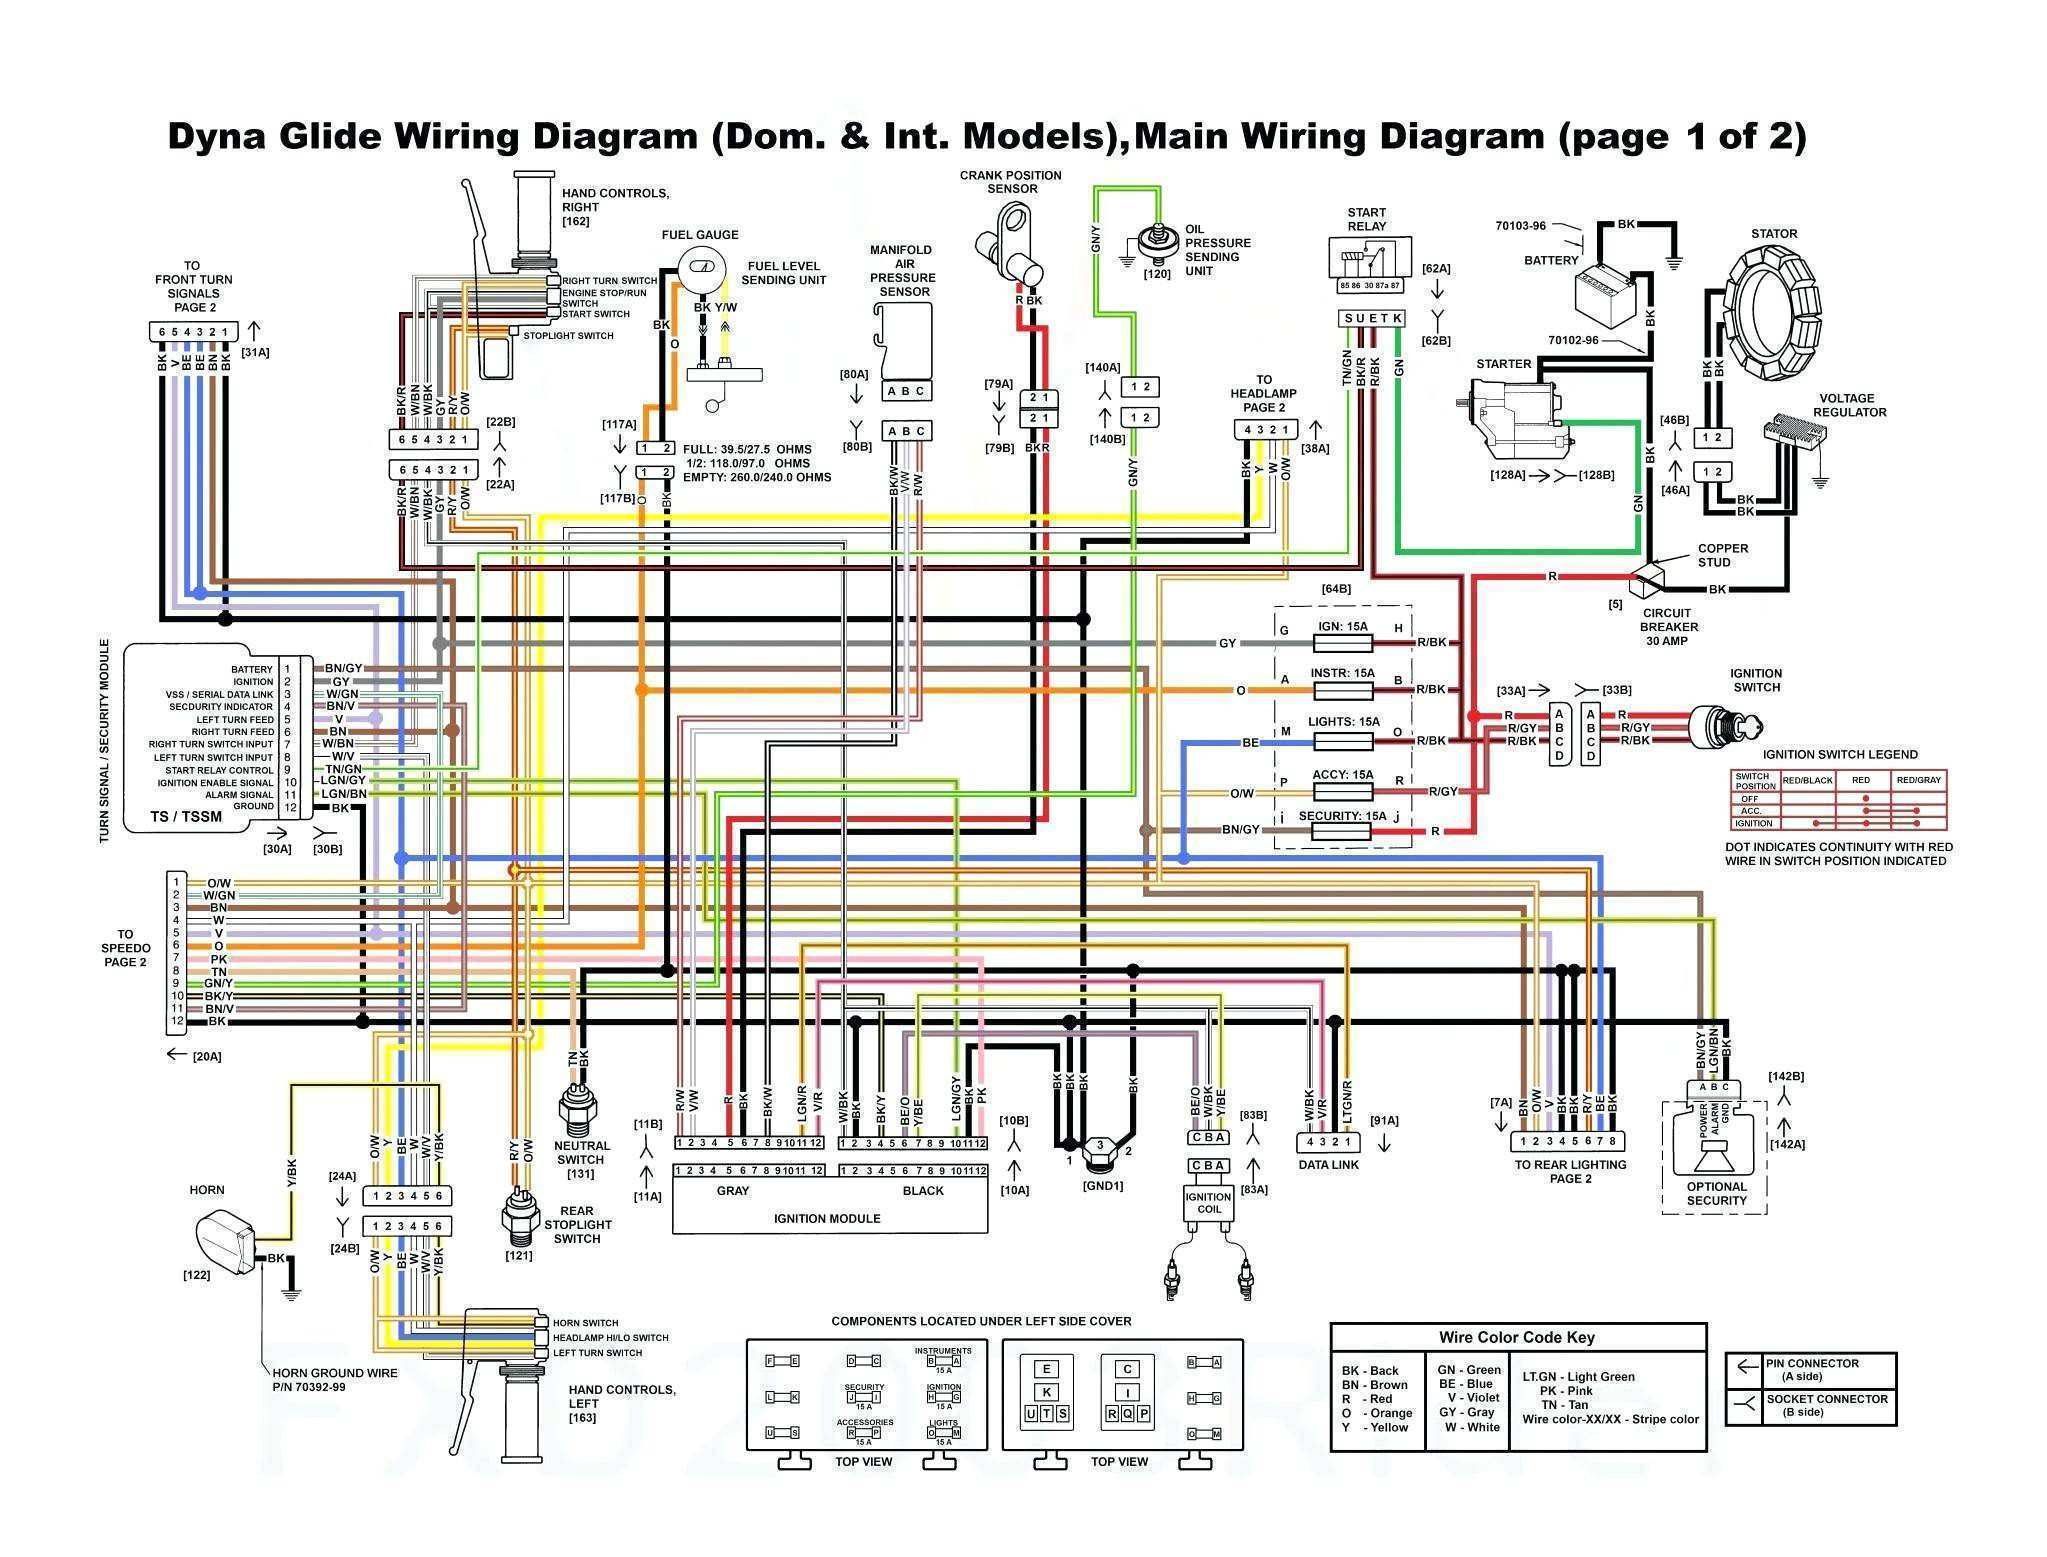 Harley Sportster Tail Light Wiring Diagram | Wiring Library - Harley Davidson Tail Light Wiring Diagram